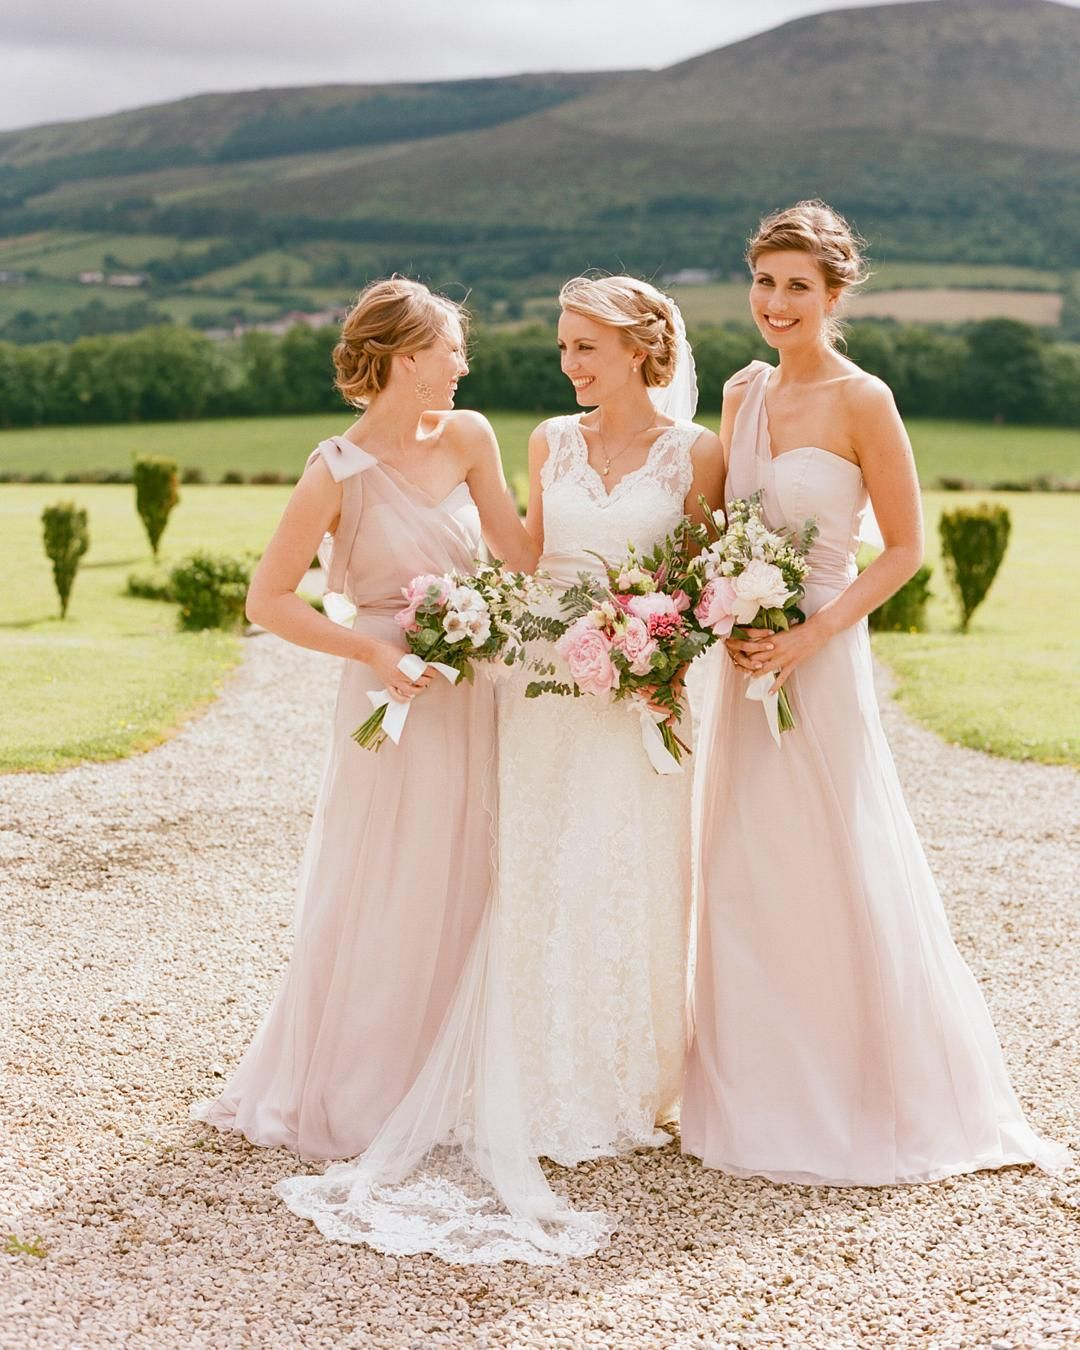 Dreaming about this Irish castle #wedding with picture perfect #bridesmaids in @maidstomeasure dresses and #bride in @cymbelineparis captured by #EADvendor @LisaODwyerPhoto! #EADweddings #elizabethannedesigns #irelandwedding by elizabethannedesigns